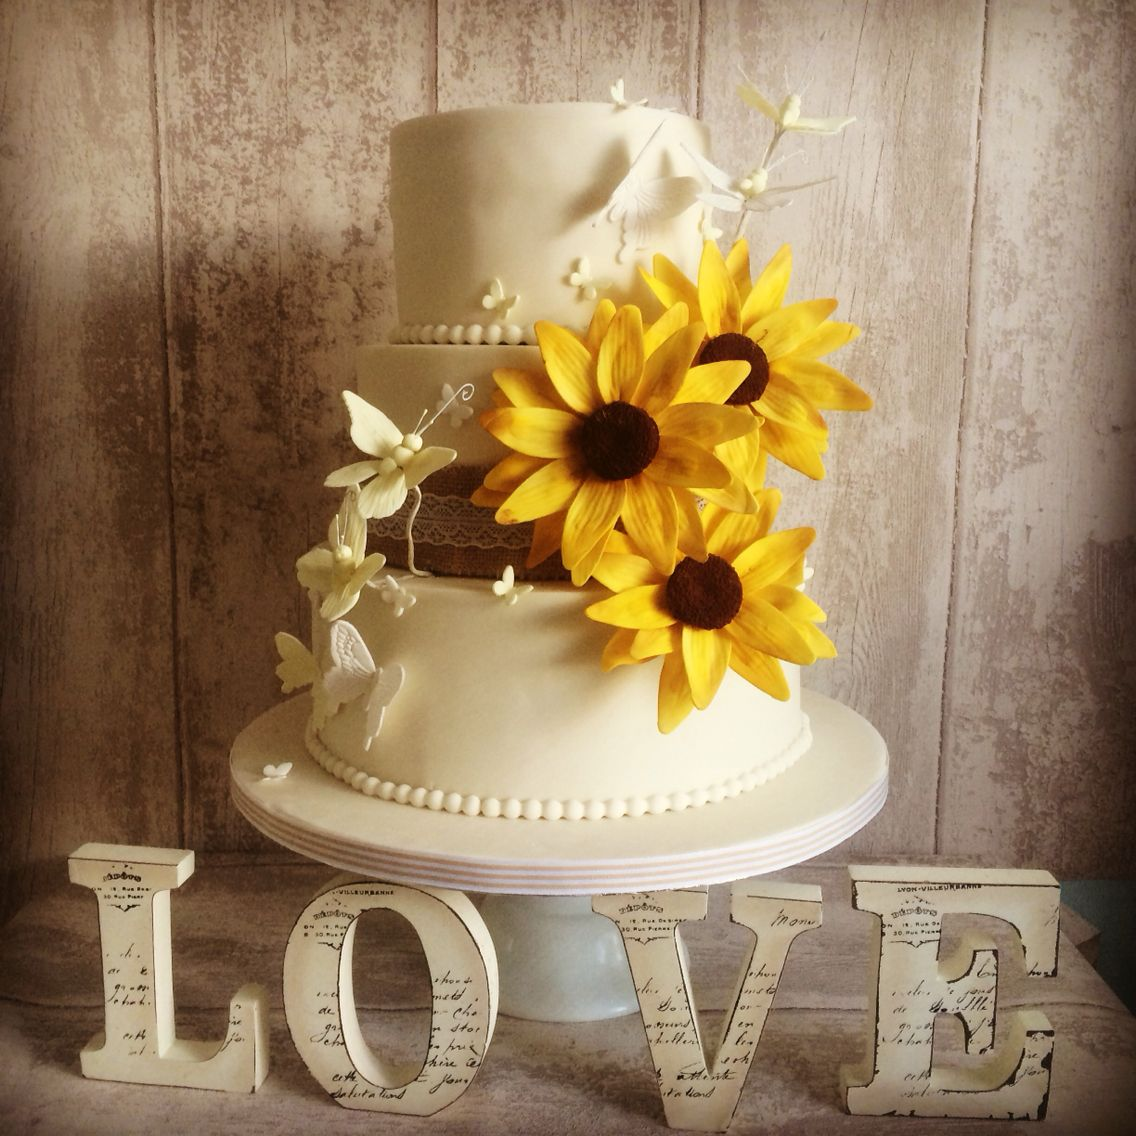 Sunflower Wedding Cake Ideas: Beautiful Sunflower Wedding Cake With Butterfly's